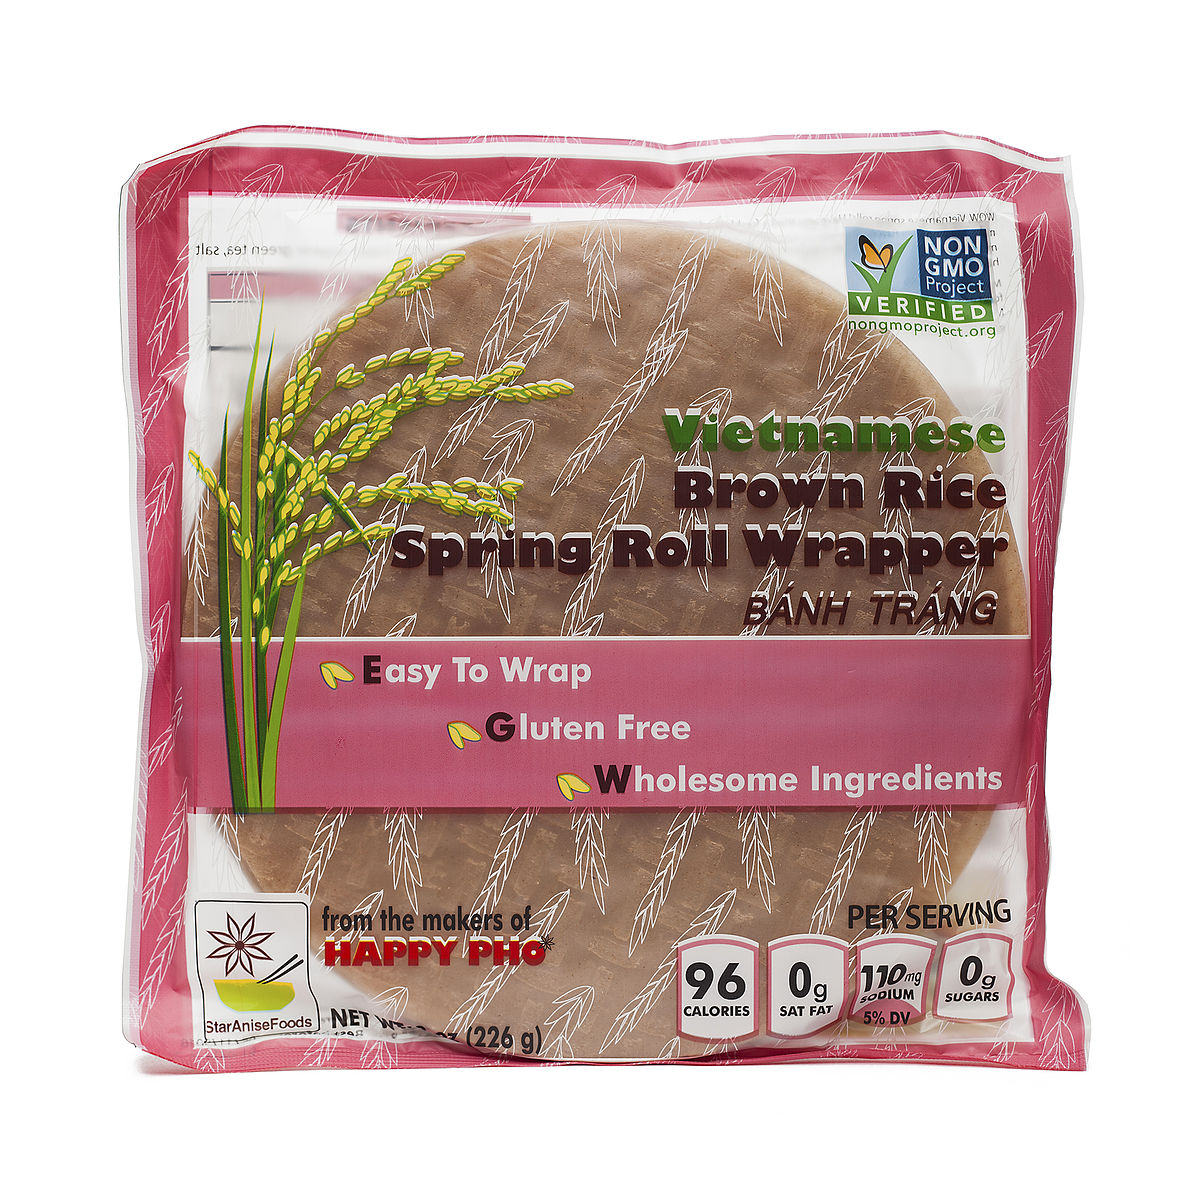 Star Anise Foods VIETNAMESE BROWN RICE SPRING ROLL WRAPPER from Thrive Market